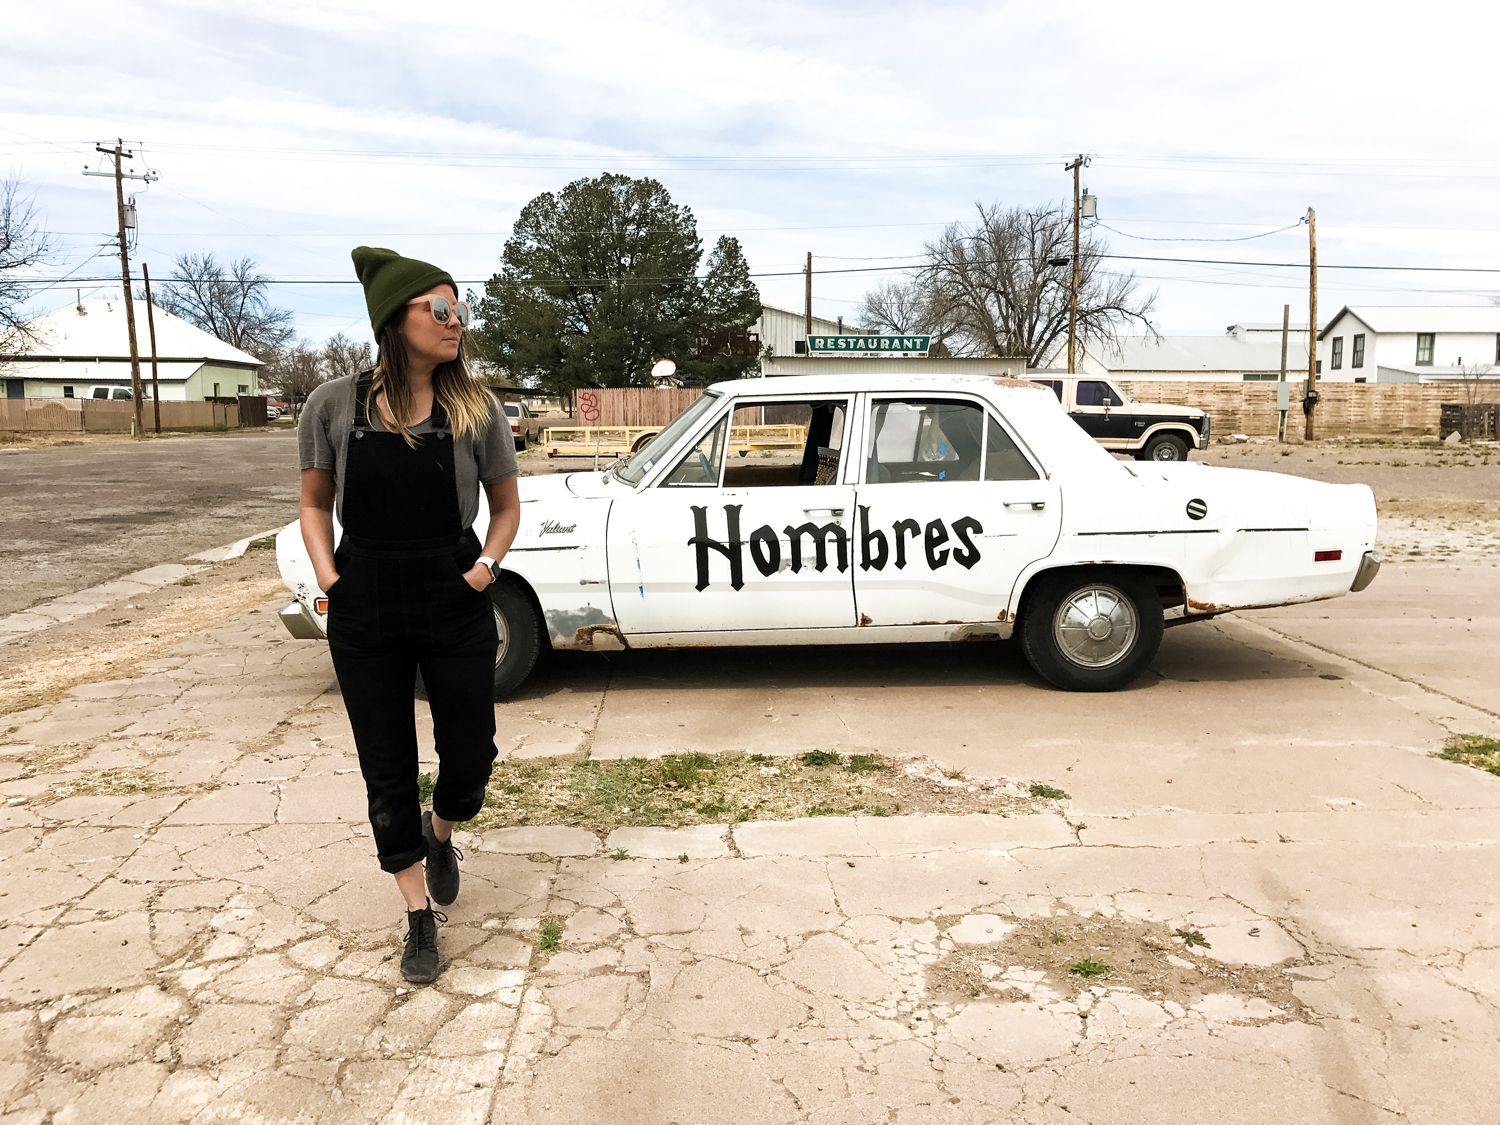 Brandi Lisenbe camp style in Marfa, Texas.    Overalls, Cobra Rock Boots, and a Beanie.    Read about #buenosjourneywest at iheartbueno.com